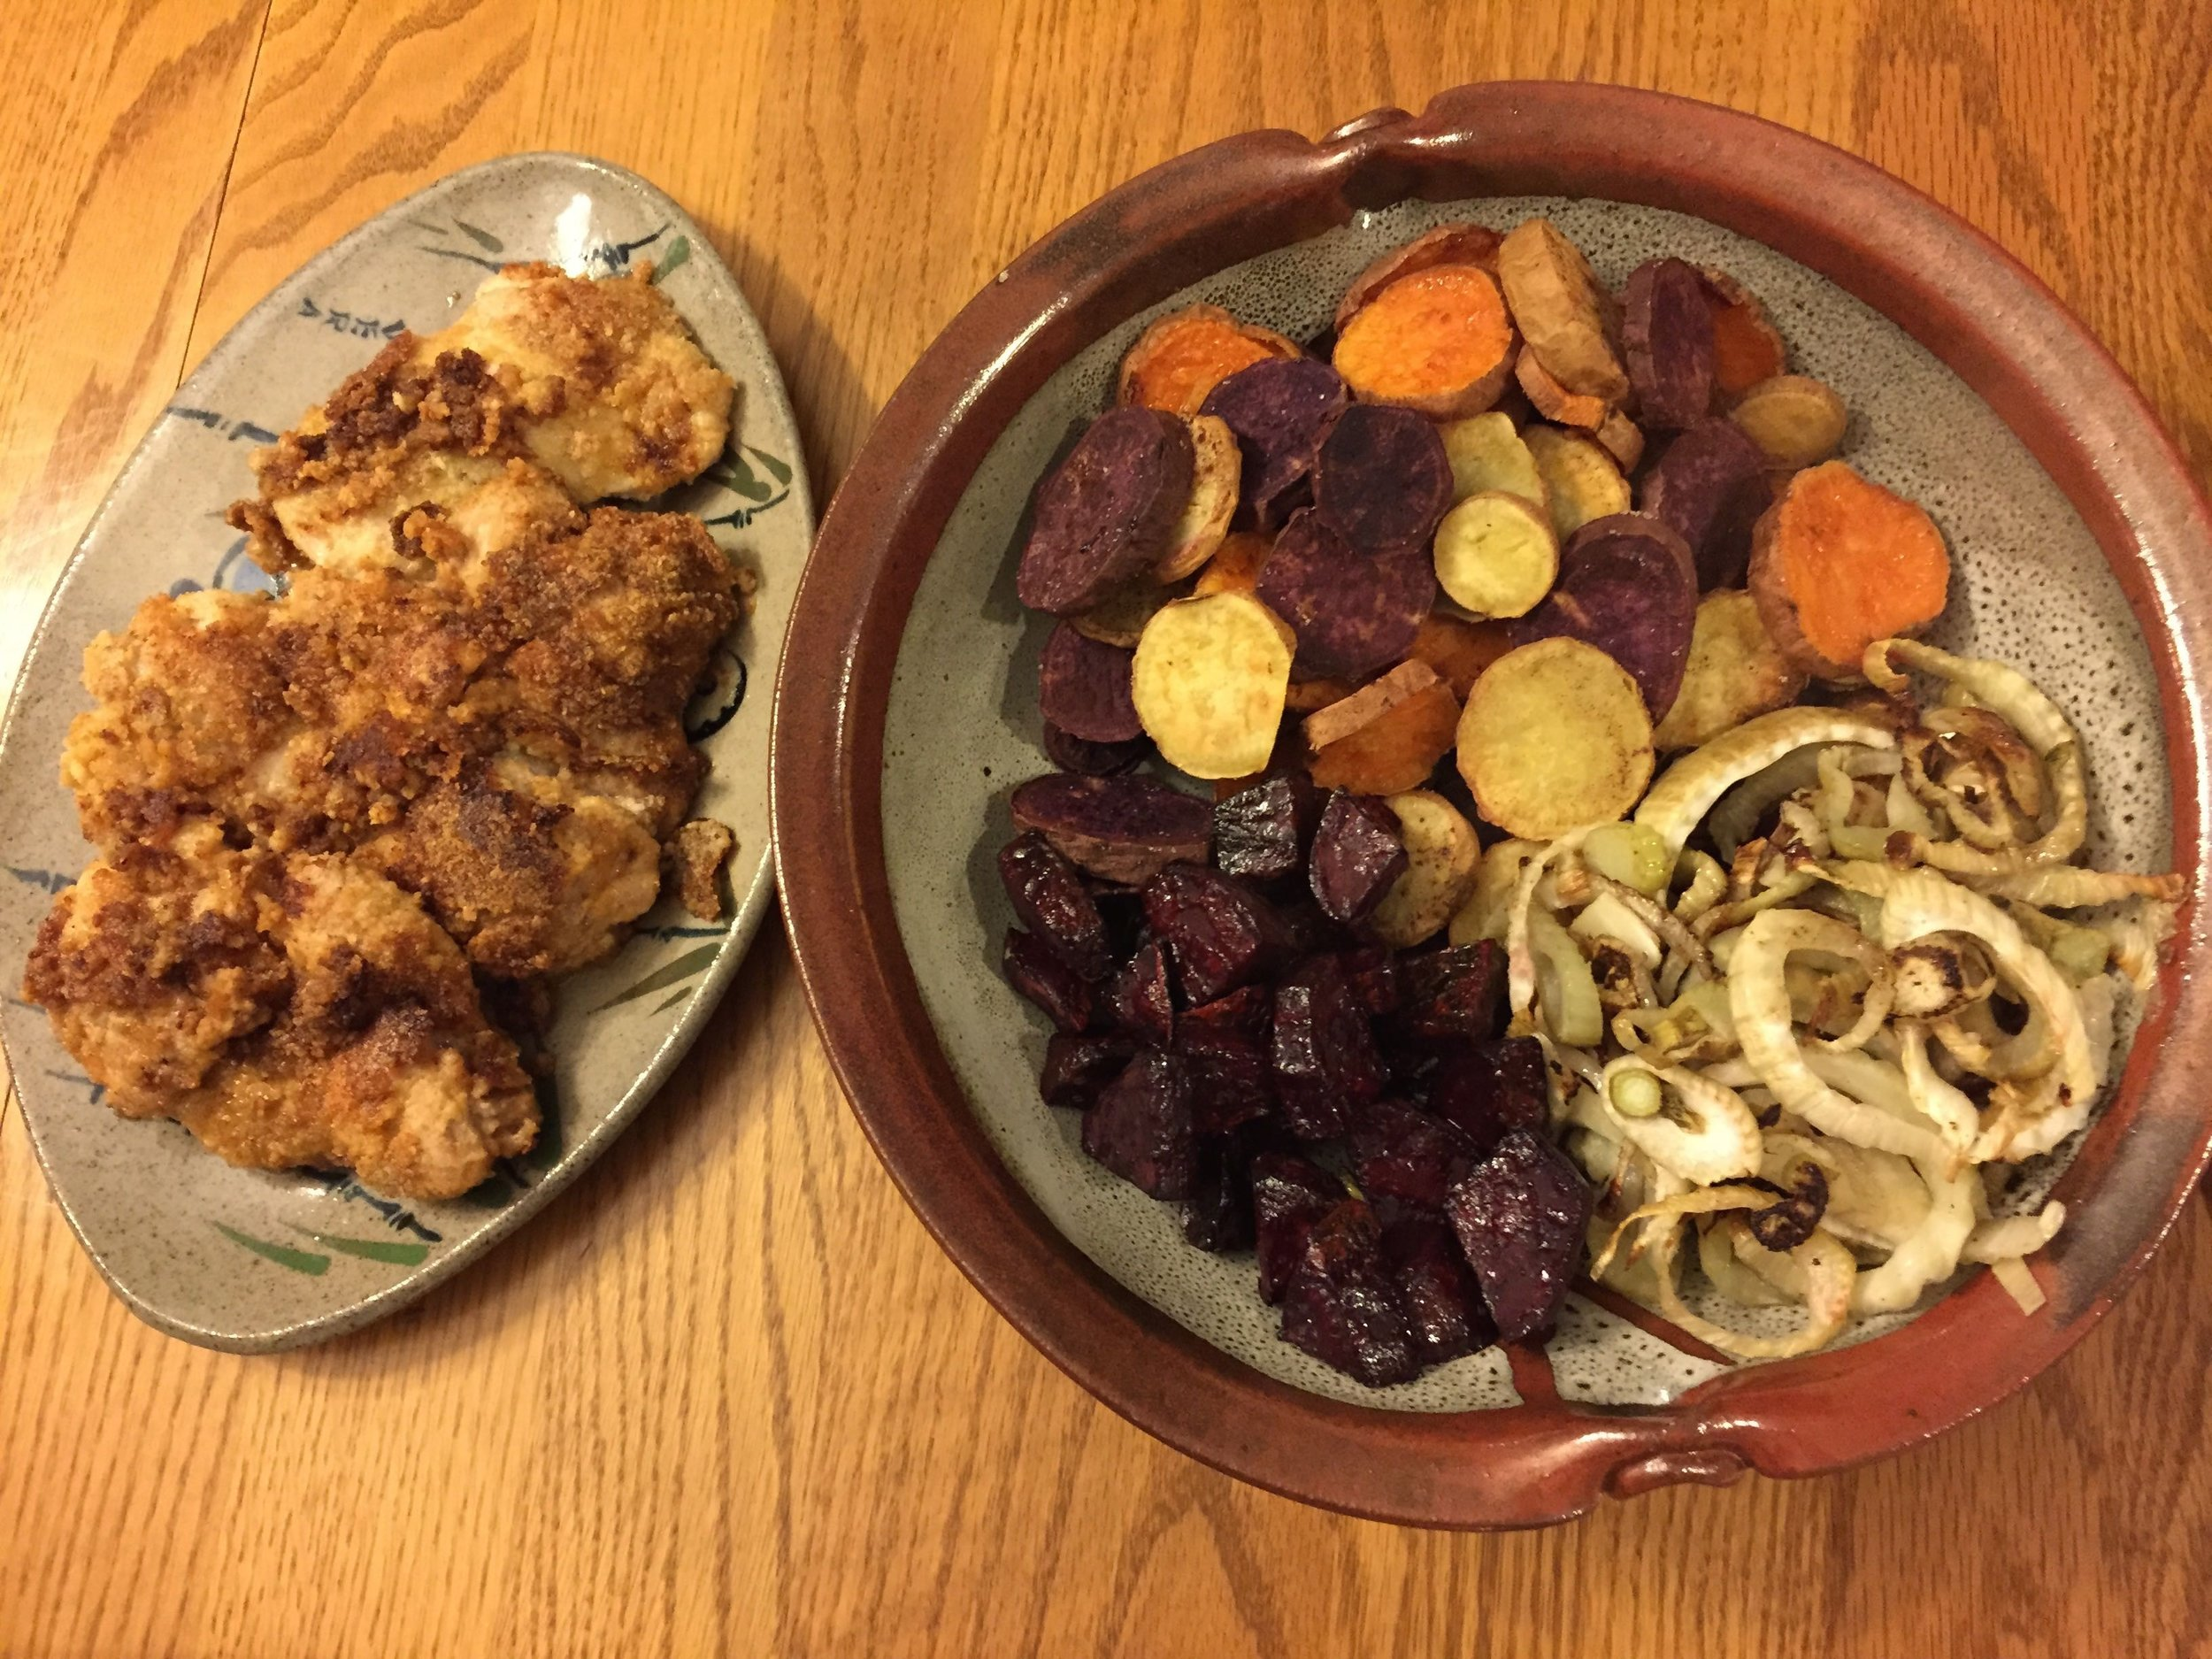 Paleo fried chicken and roasted root vegetables